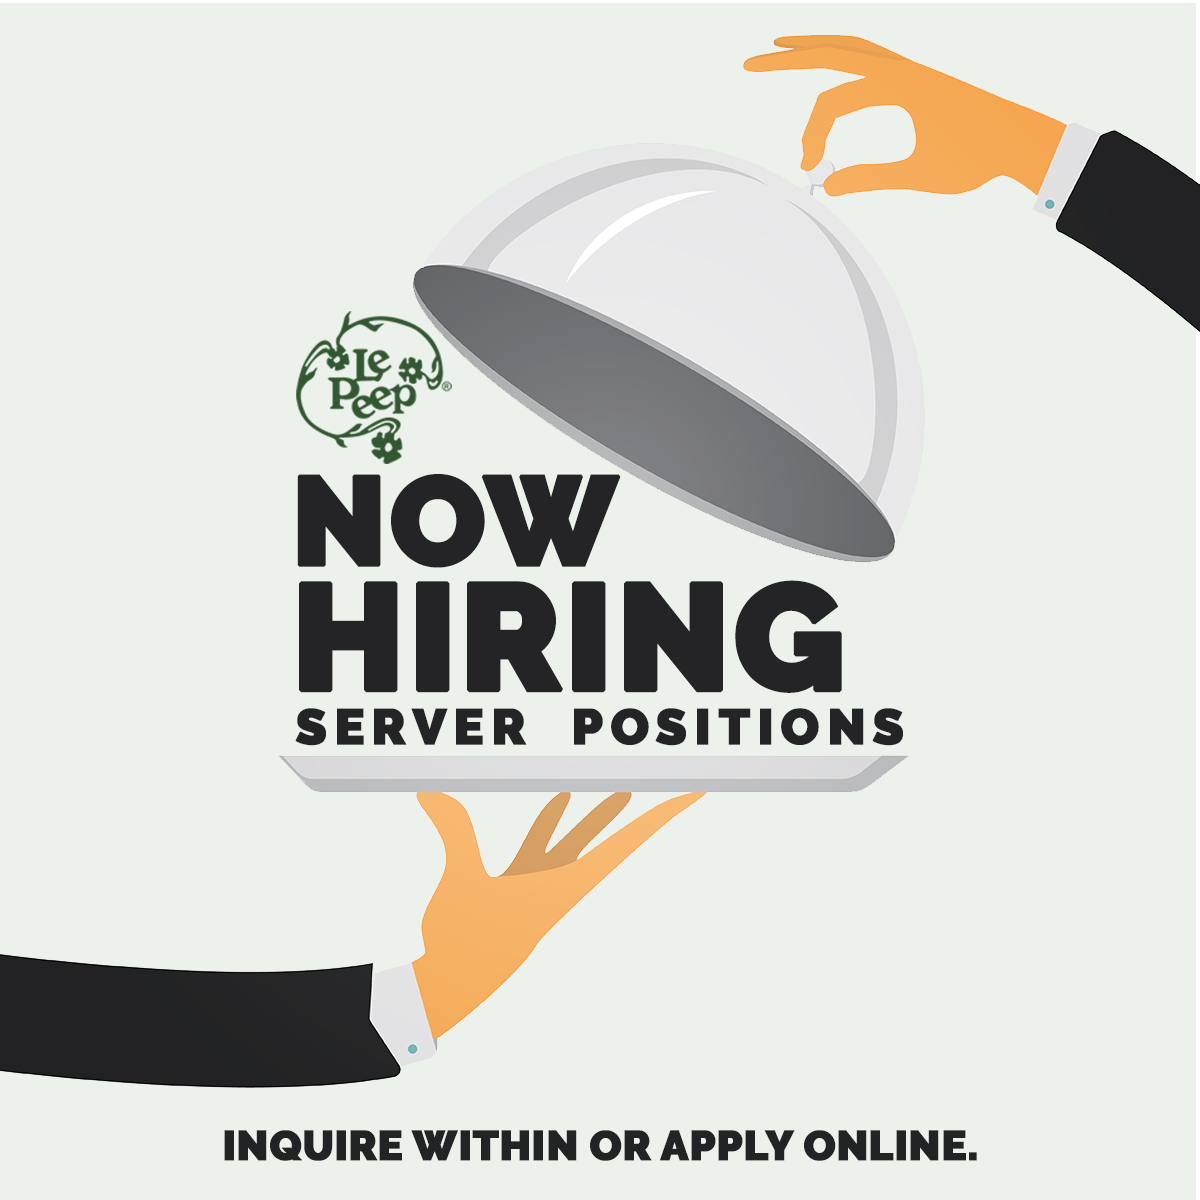 Now hiring server positions